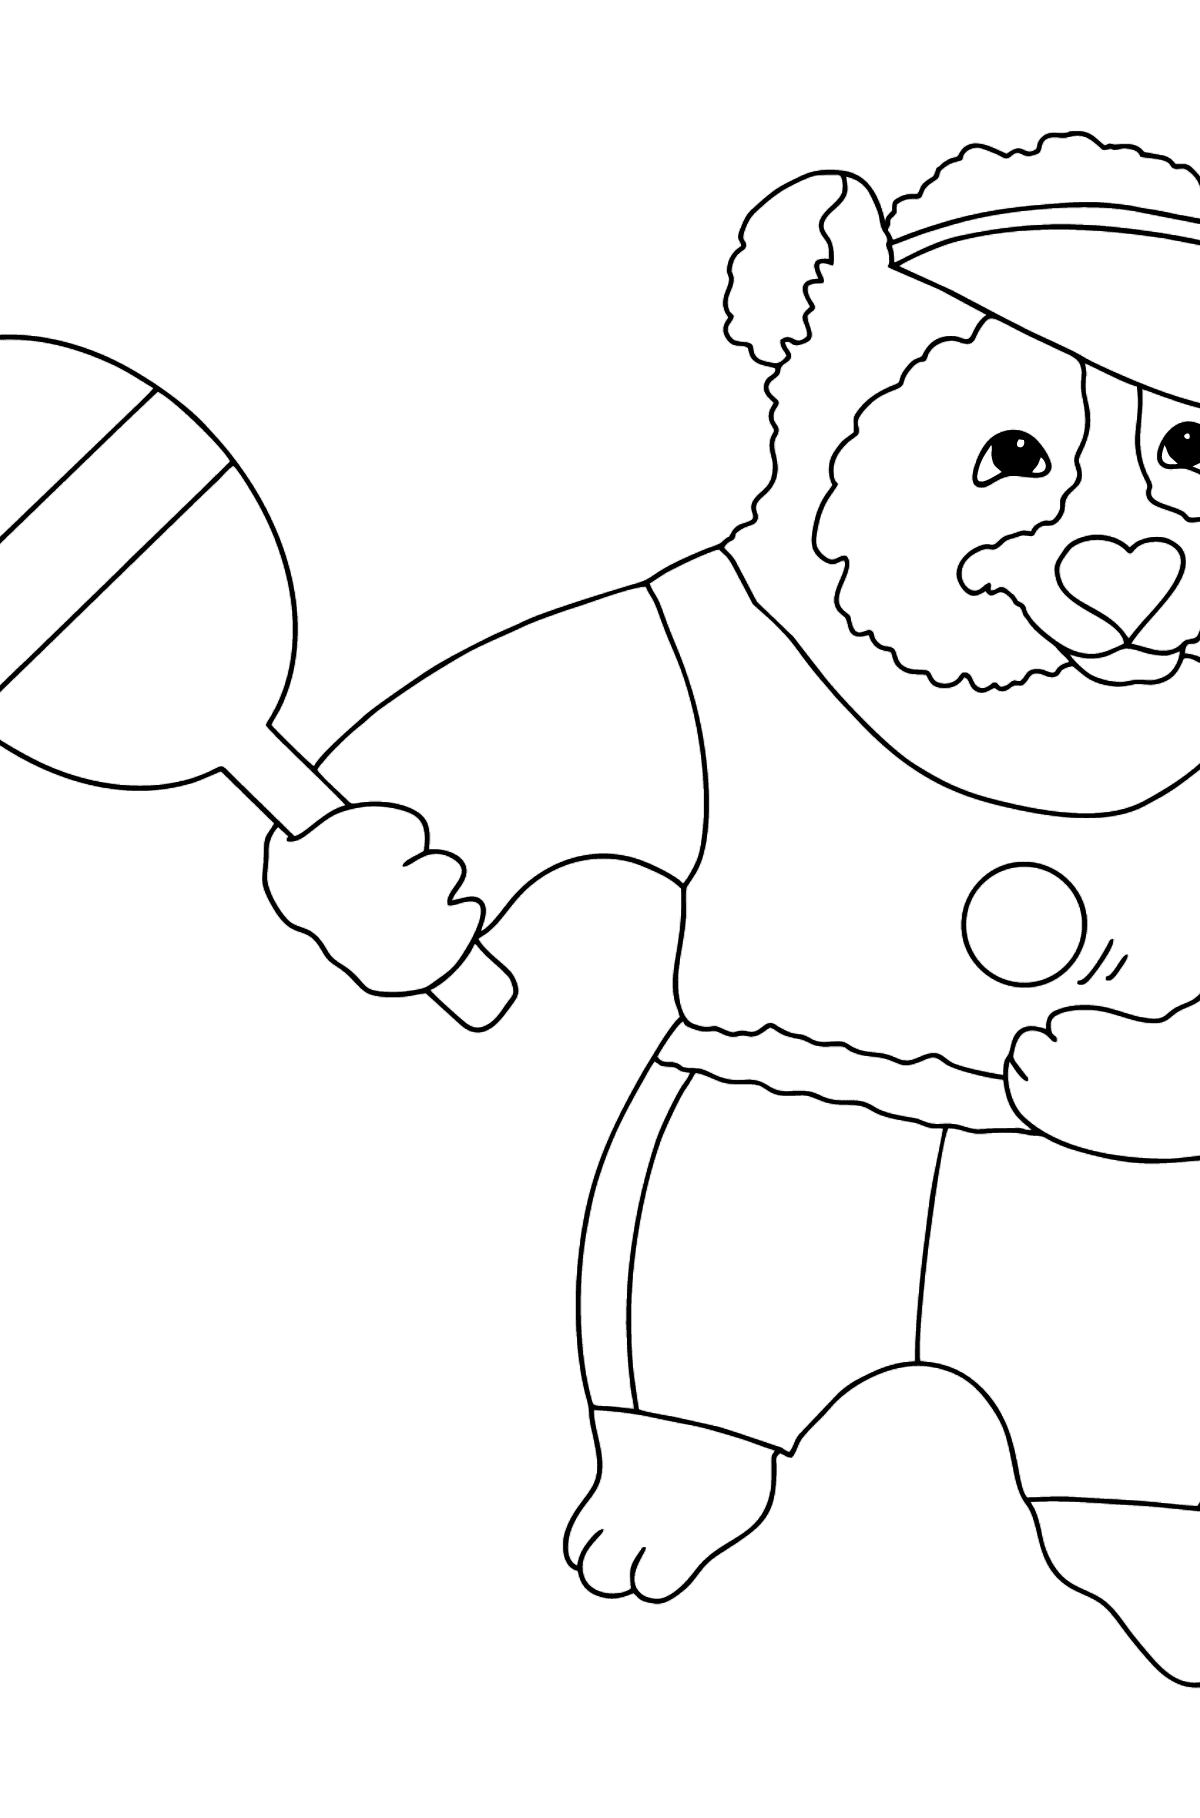 Coloring Picture - A Panda and Tennis - Coloring Pages for Kids